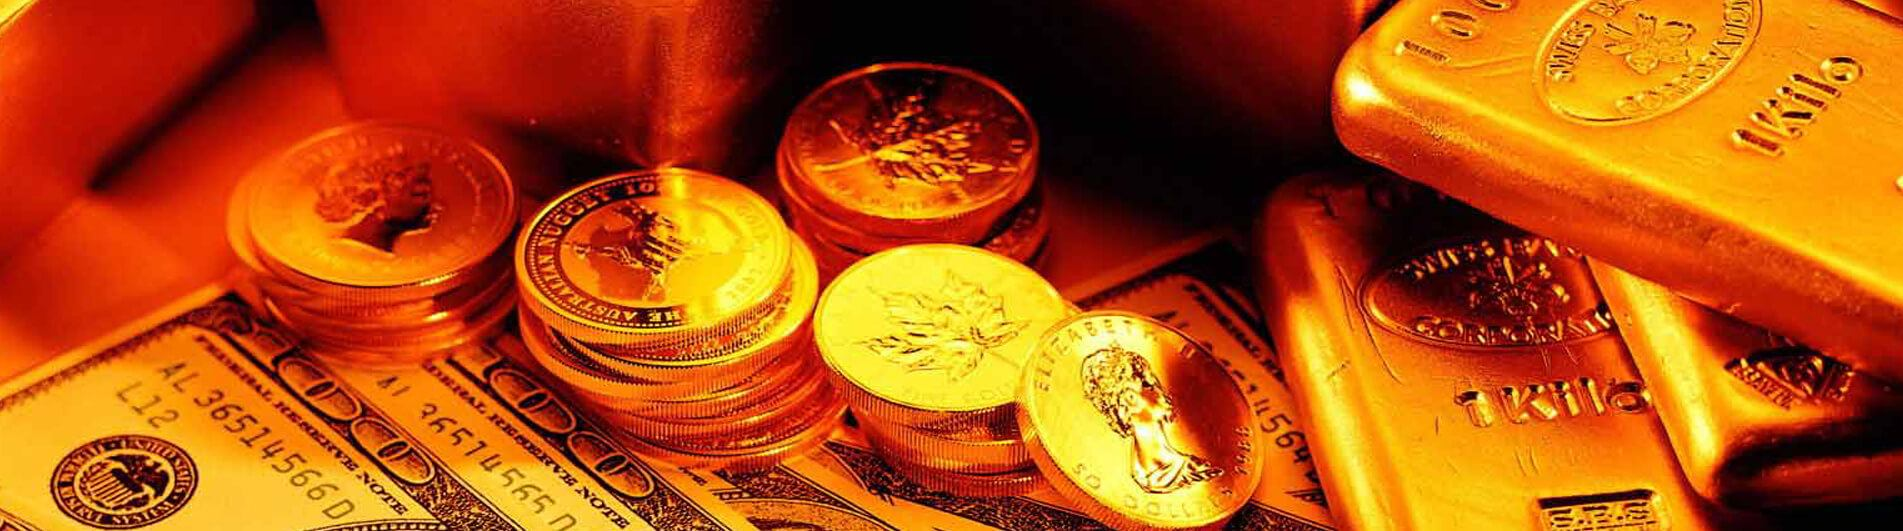 Bullion Exchanges